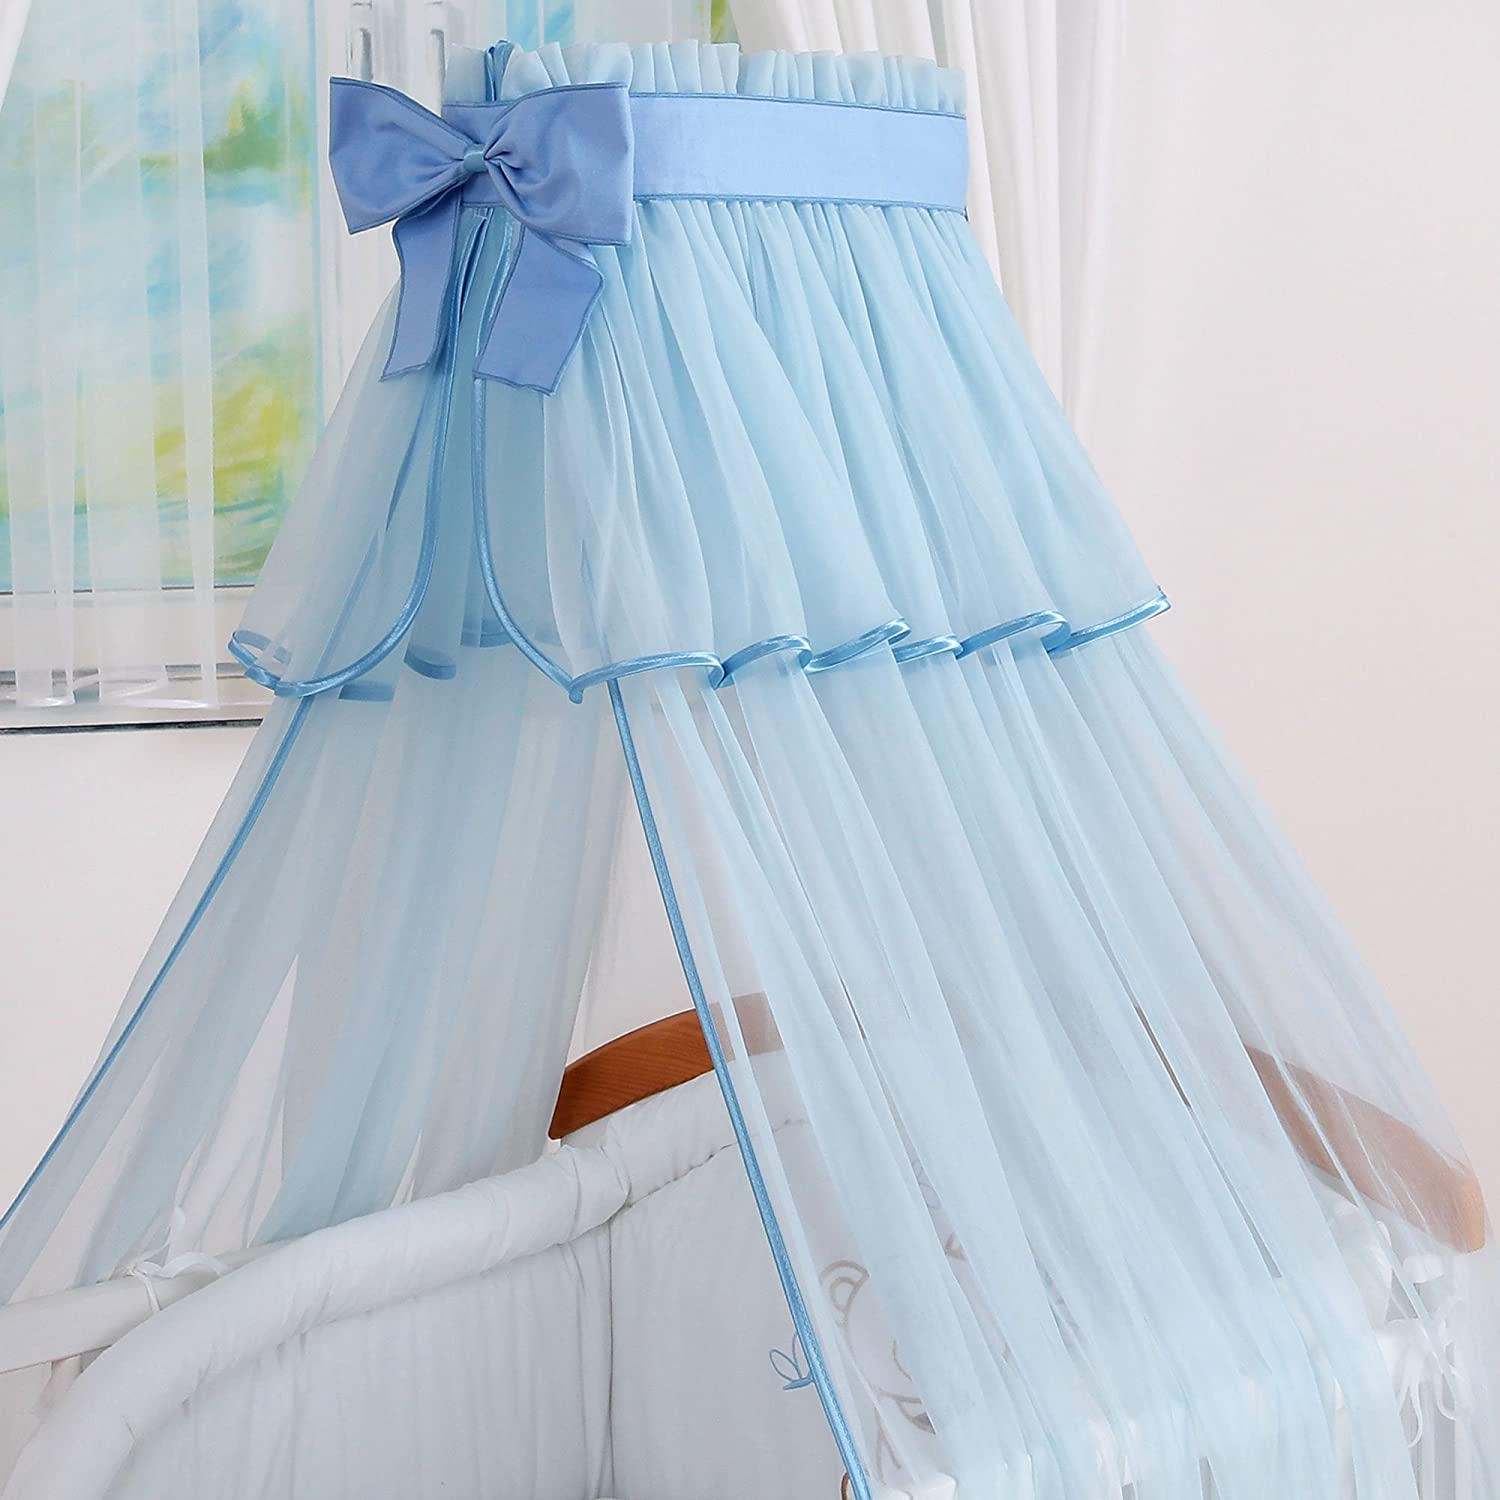 LUXURIOUS BIG CANOPY DRAPE CANOPY HOLDER to fit Baby Cot or Cot Bed BLUE 480x160cm